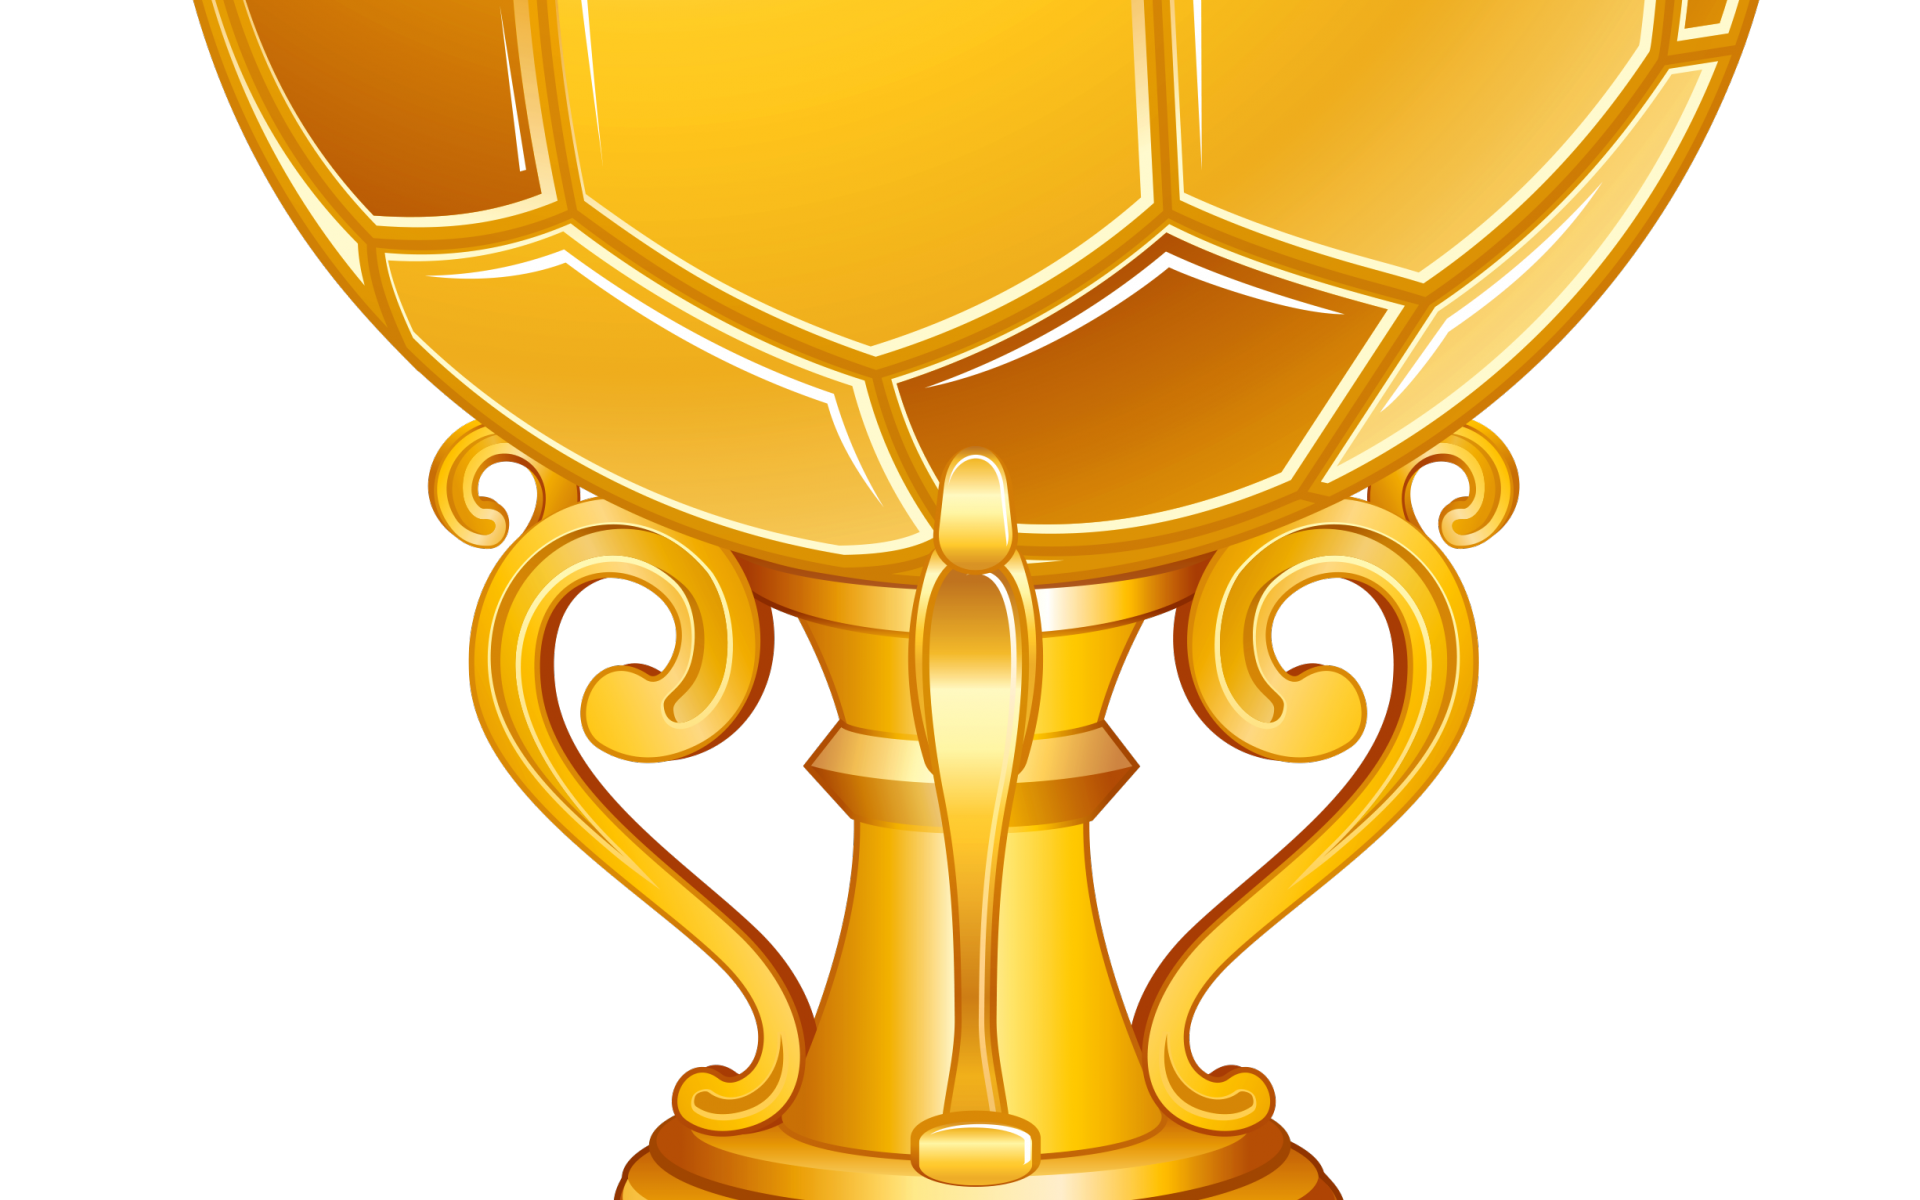 Football trophy clipart vector library Football Trophy Clipart 1 - 2452 X 4437 | carwad.net vector library